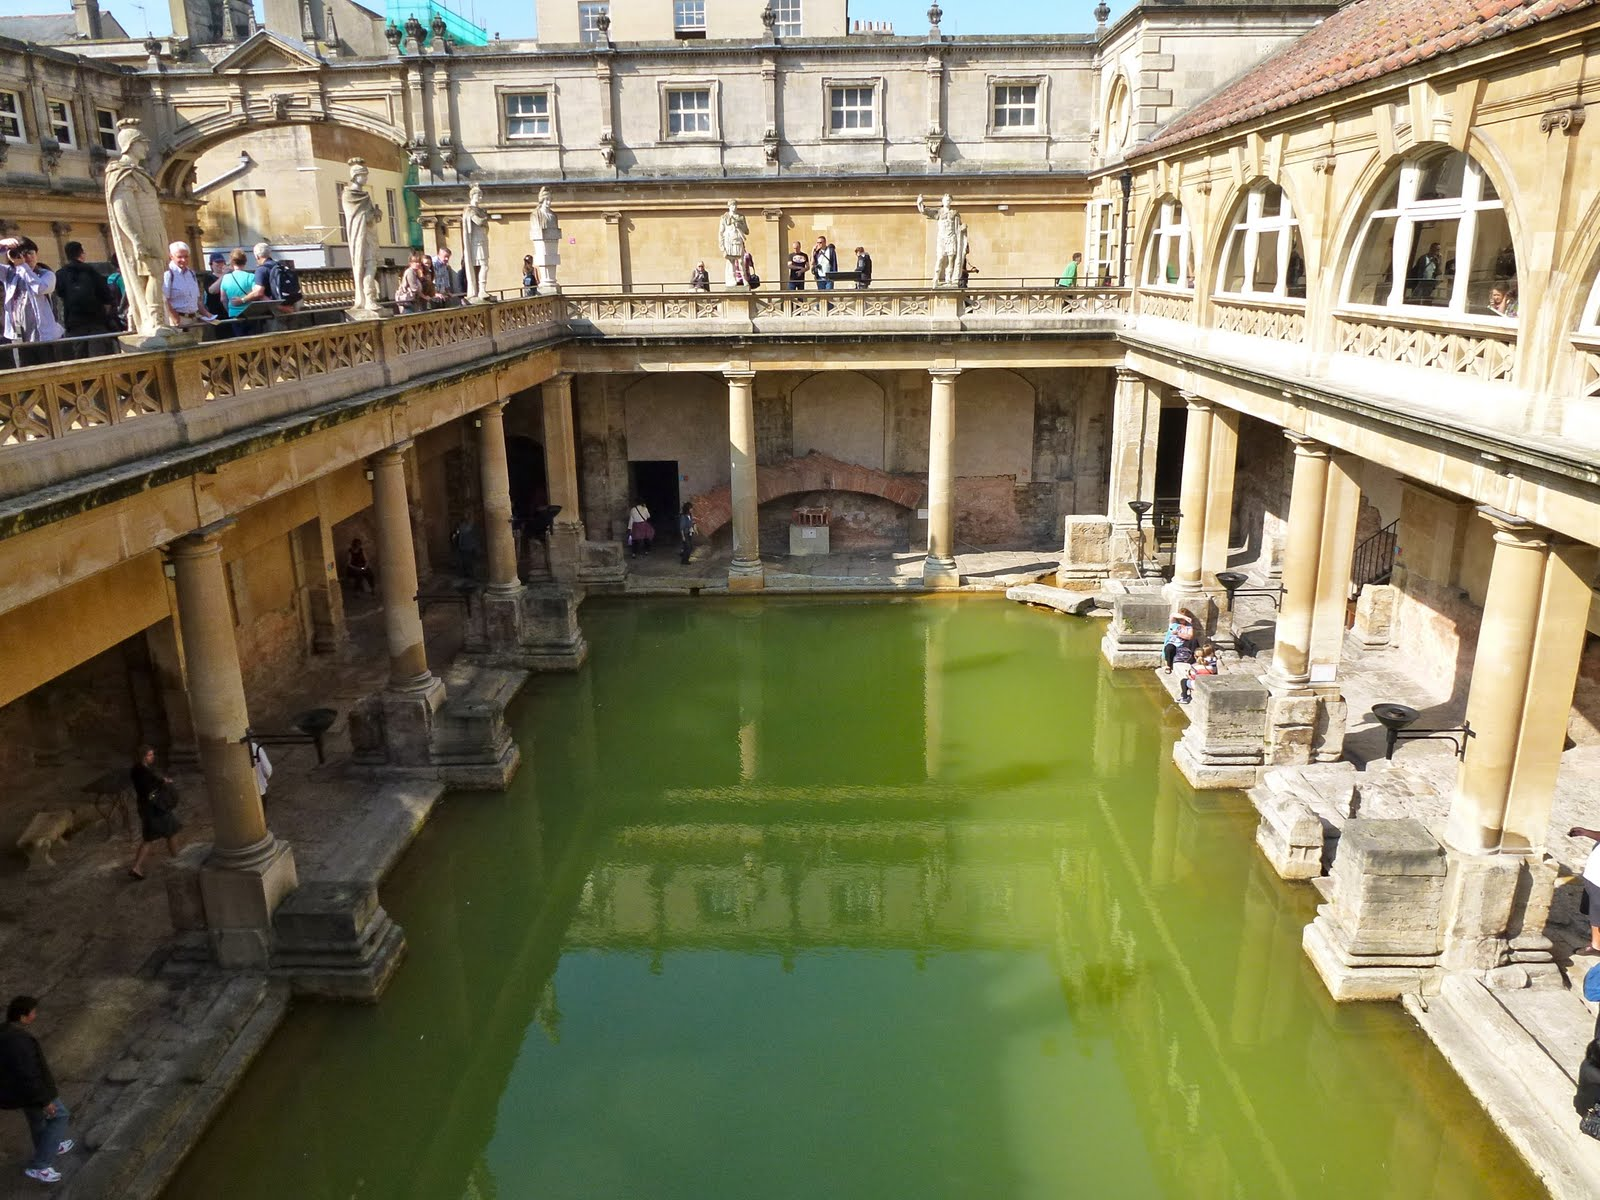 the baths of aquae sulis History of the spa  archaeology carried out prior to construction suggests the baths at aquae sulis would have been nearly twice as large as previously thought.